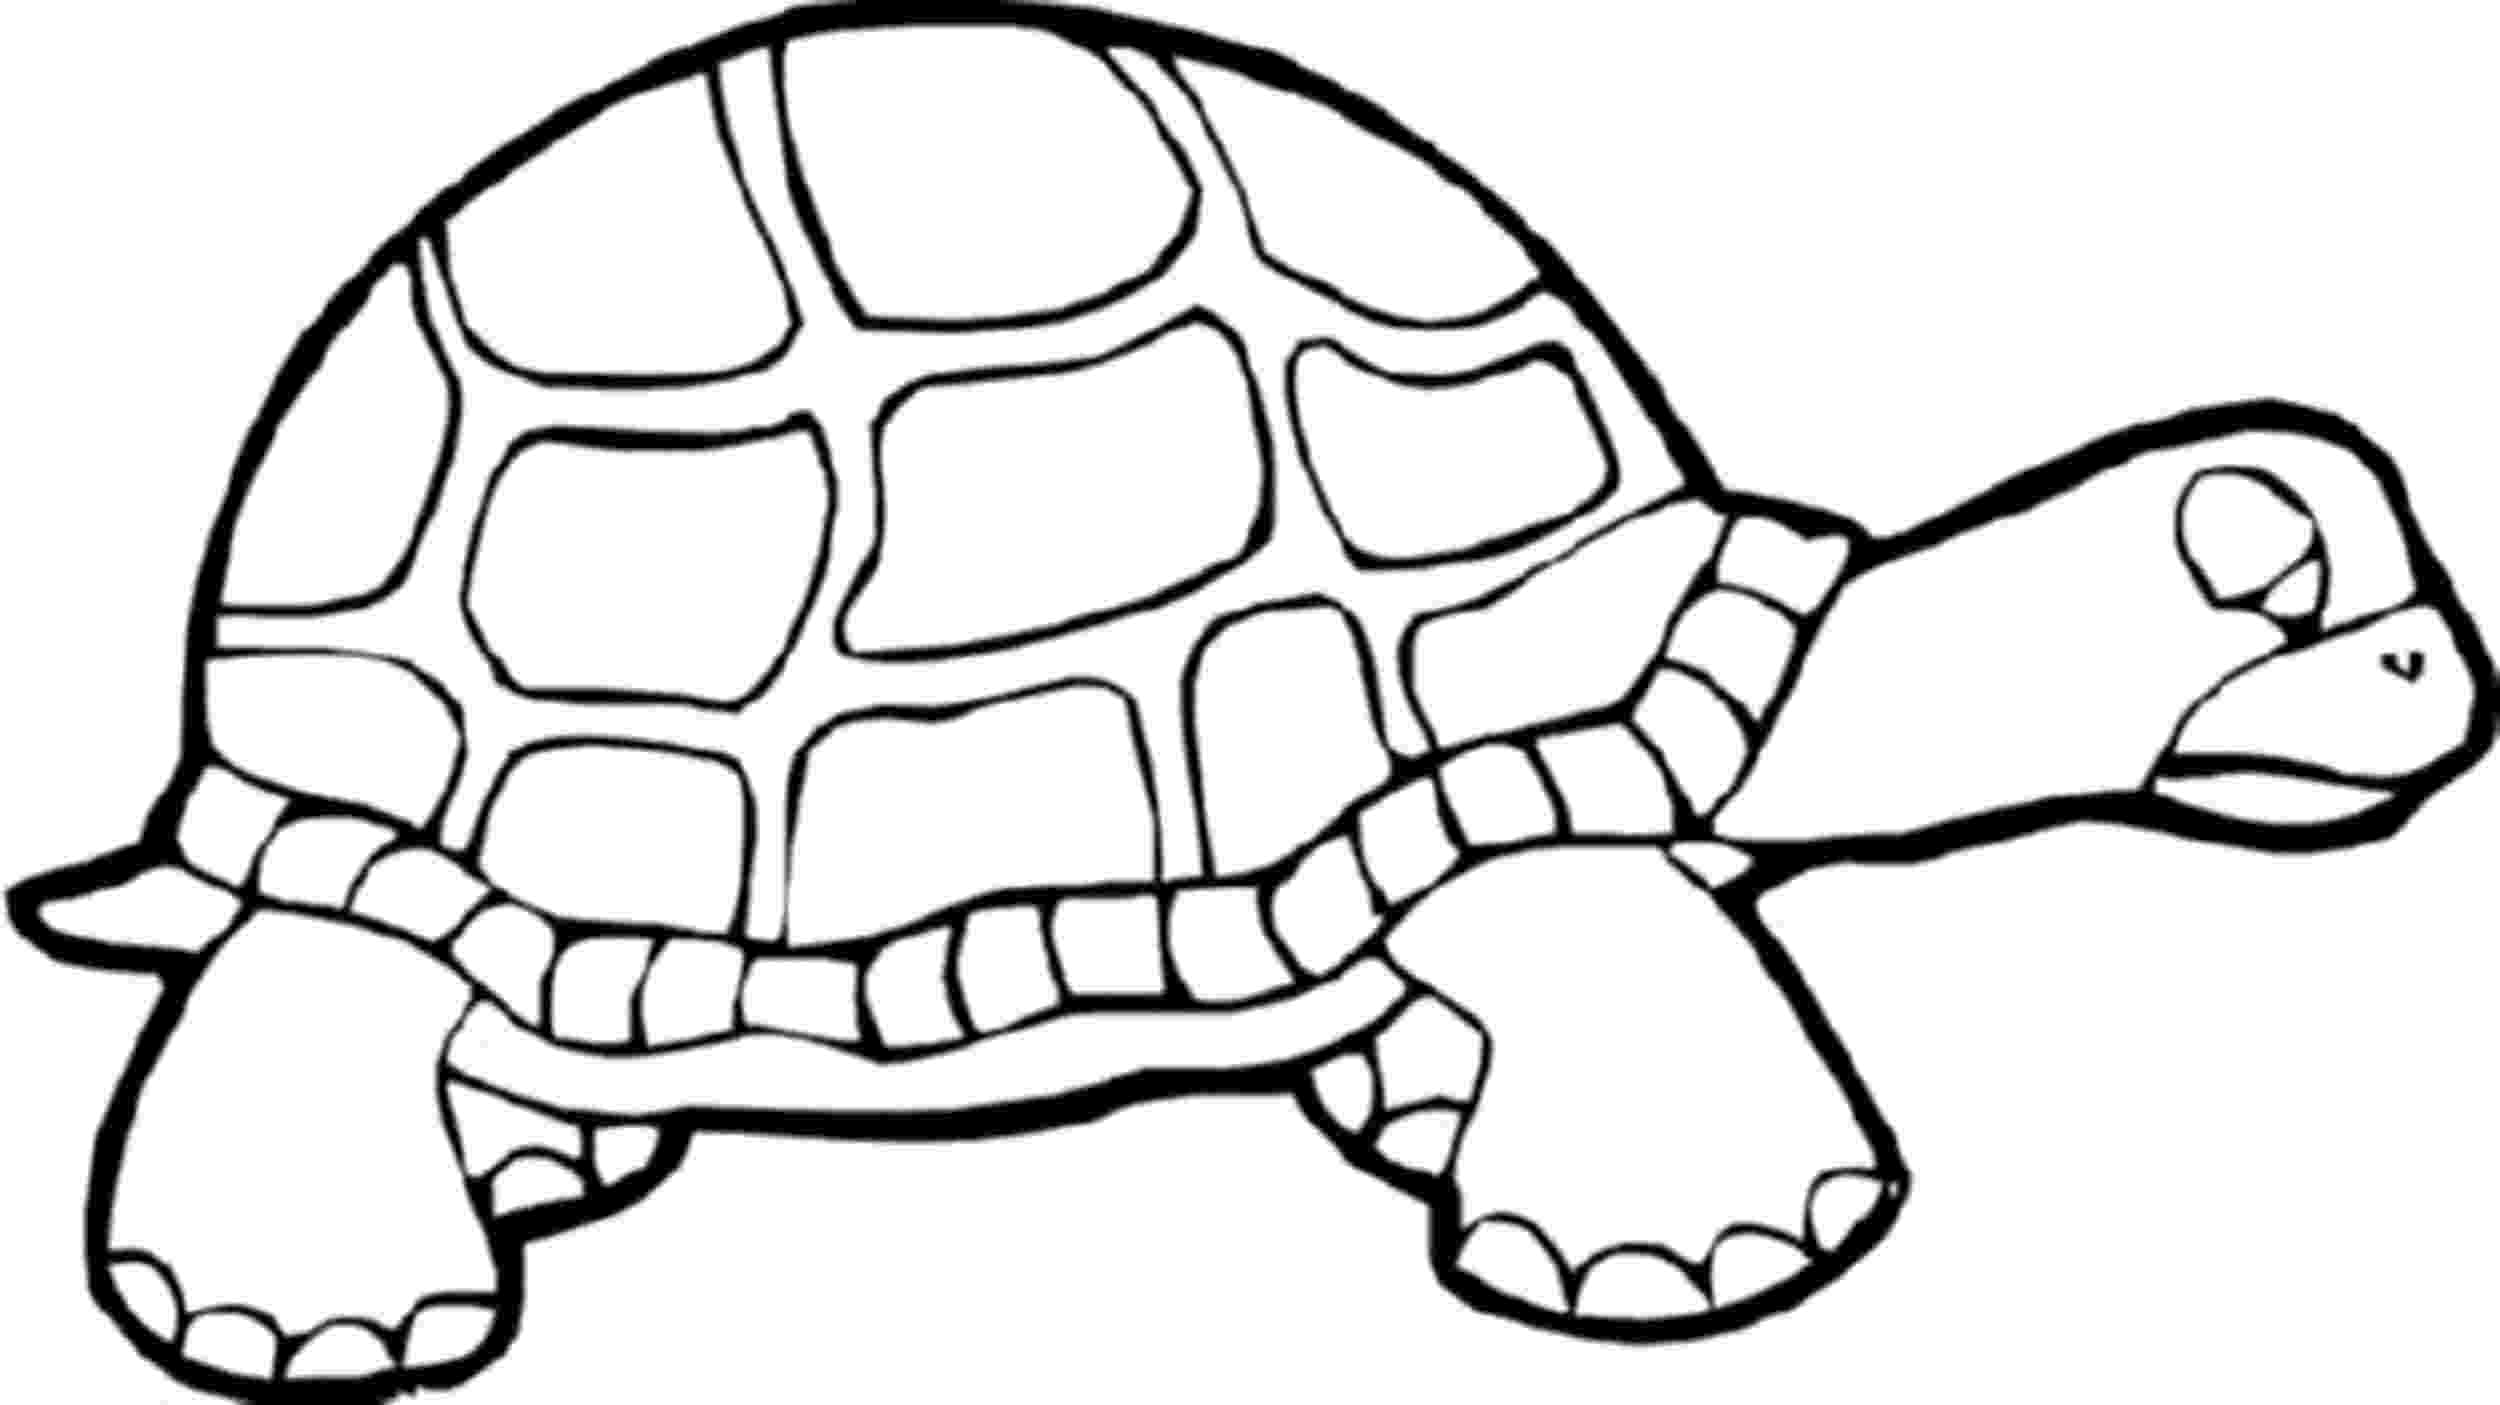 turtle coloring pictures to print turtles to print for free turtles kids coloring pages turtle coloring pictures to print